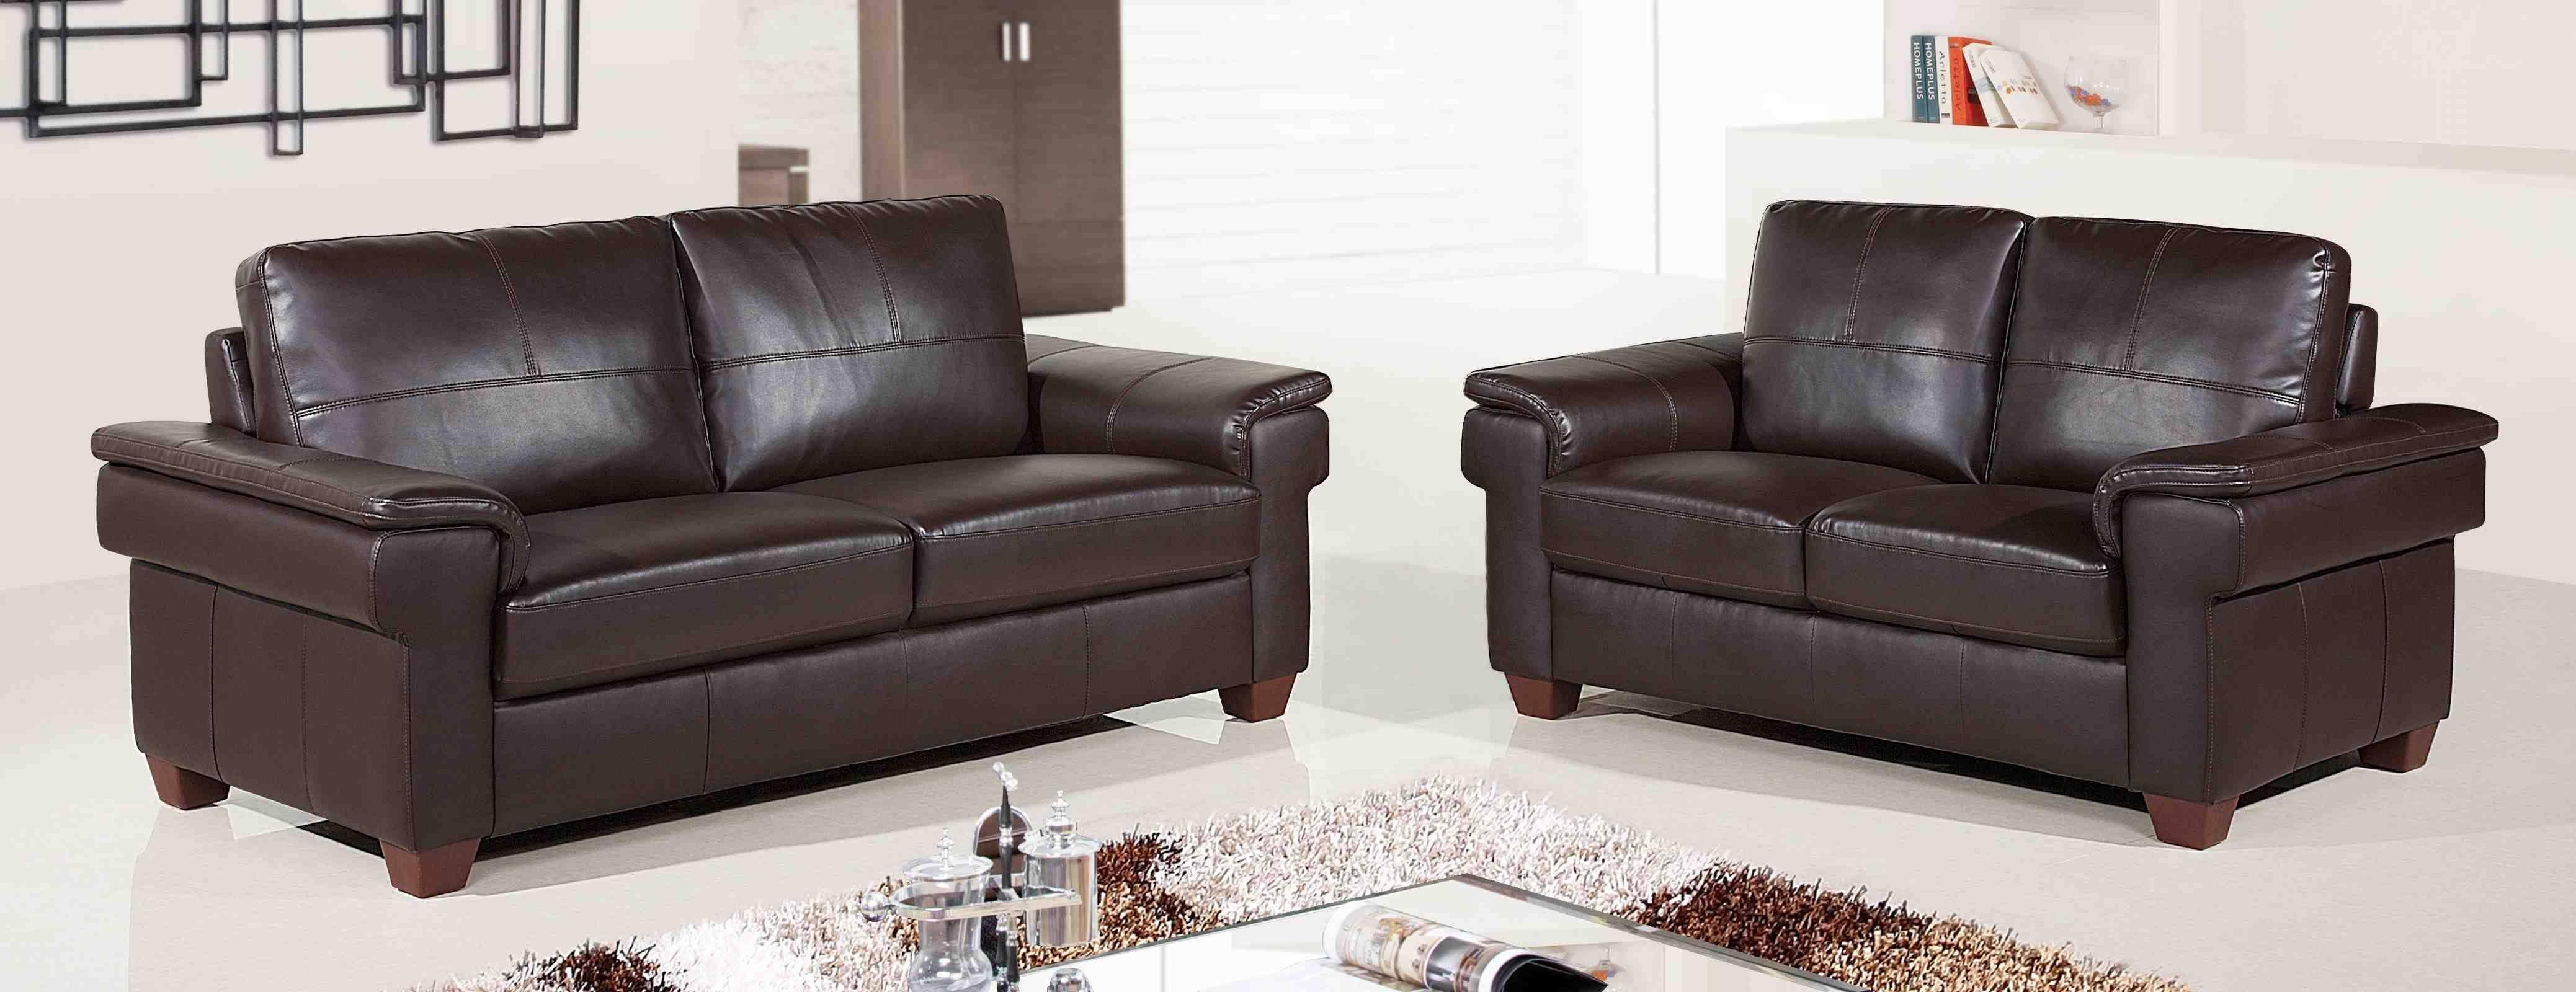 Corner Couches For Sale 20 Best Ideas Traditional Sofas For Sale Sofa Ideas